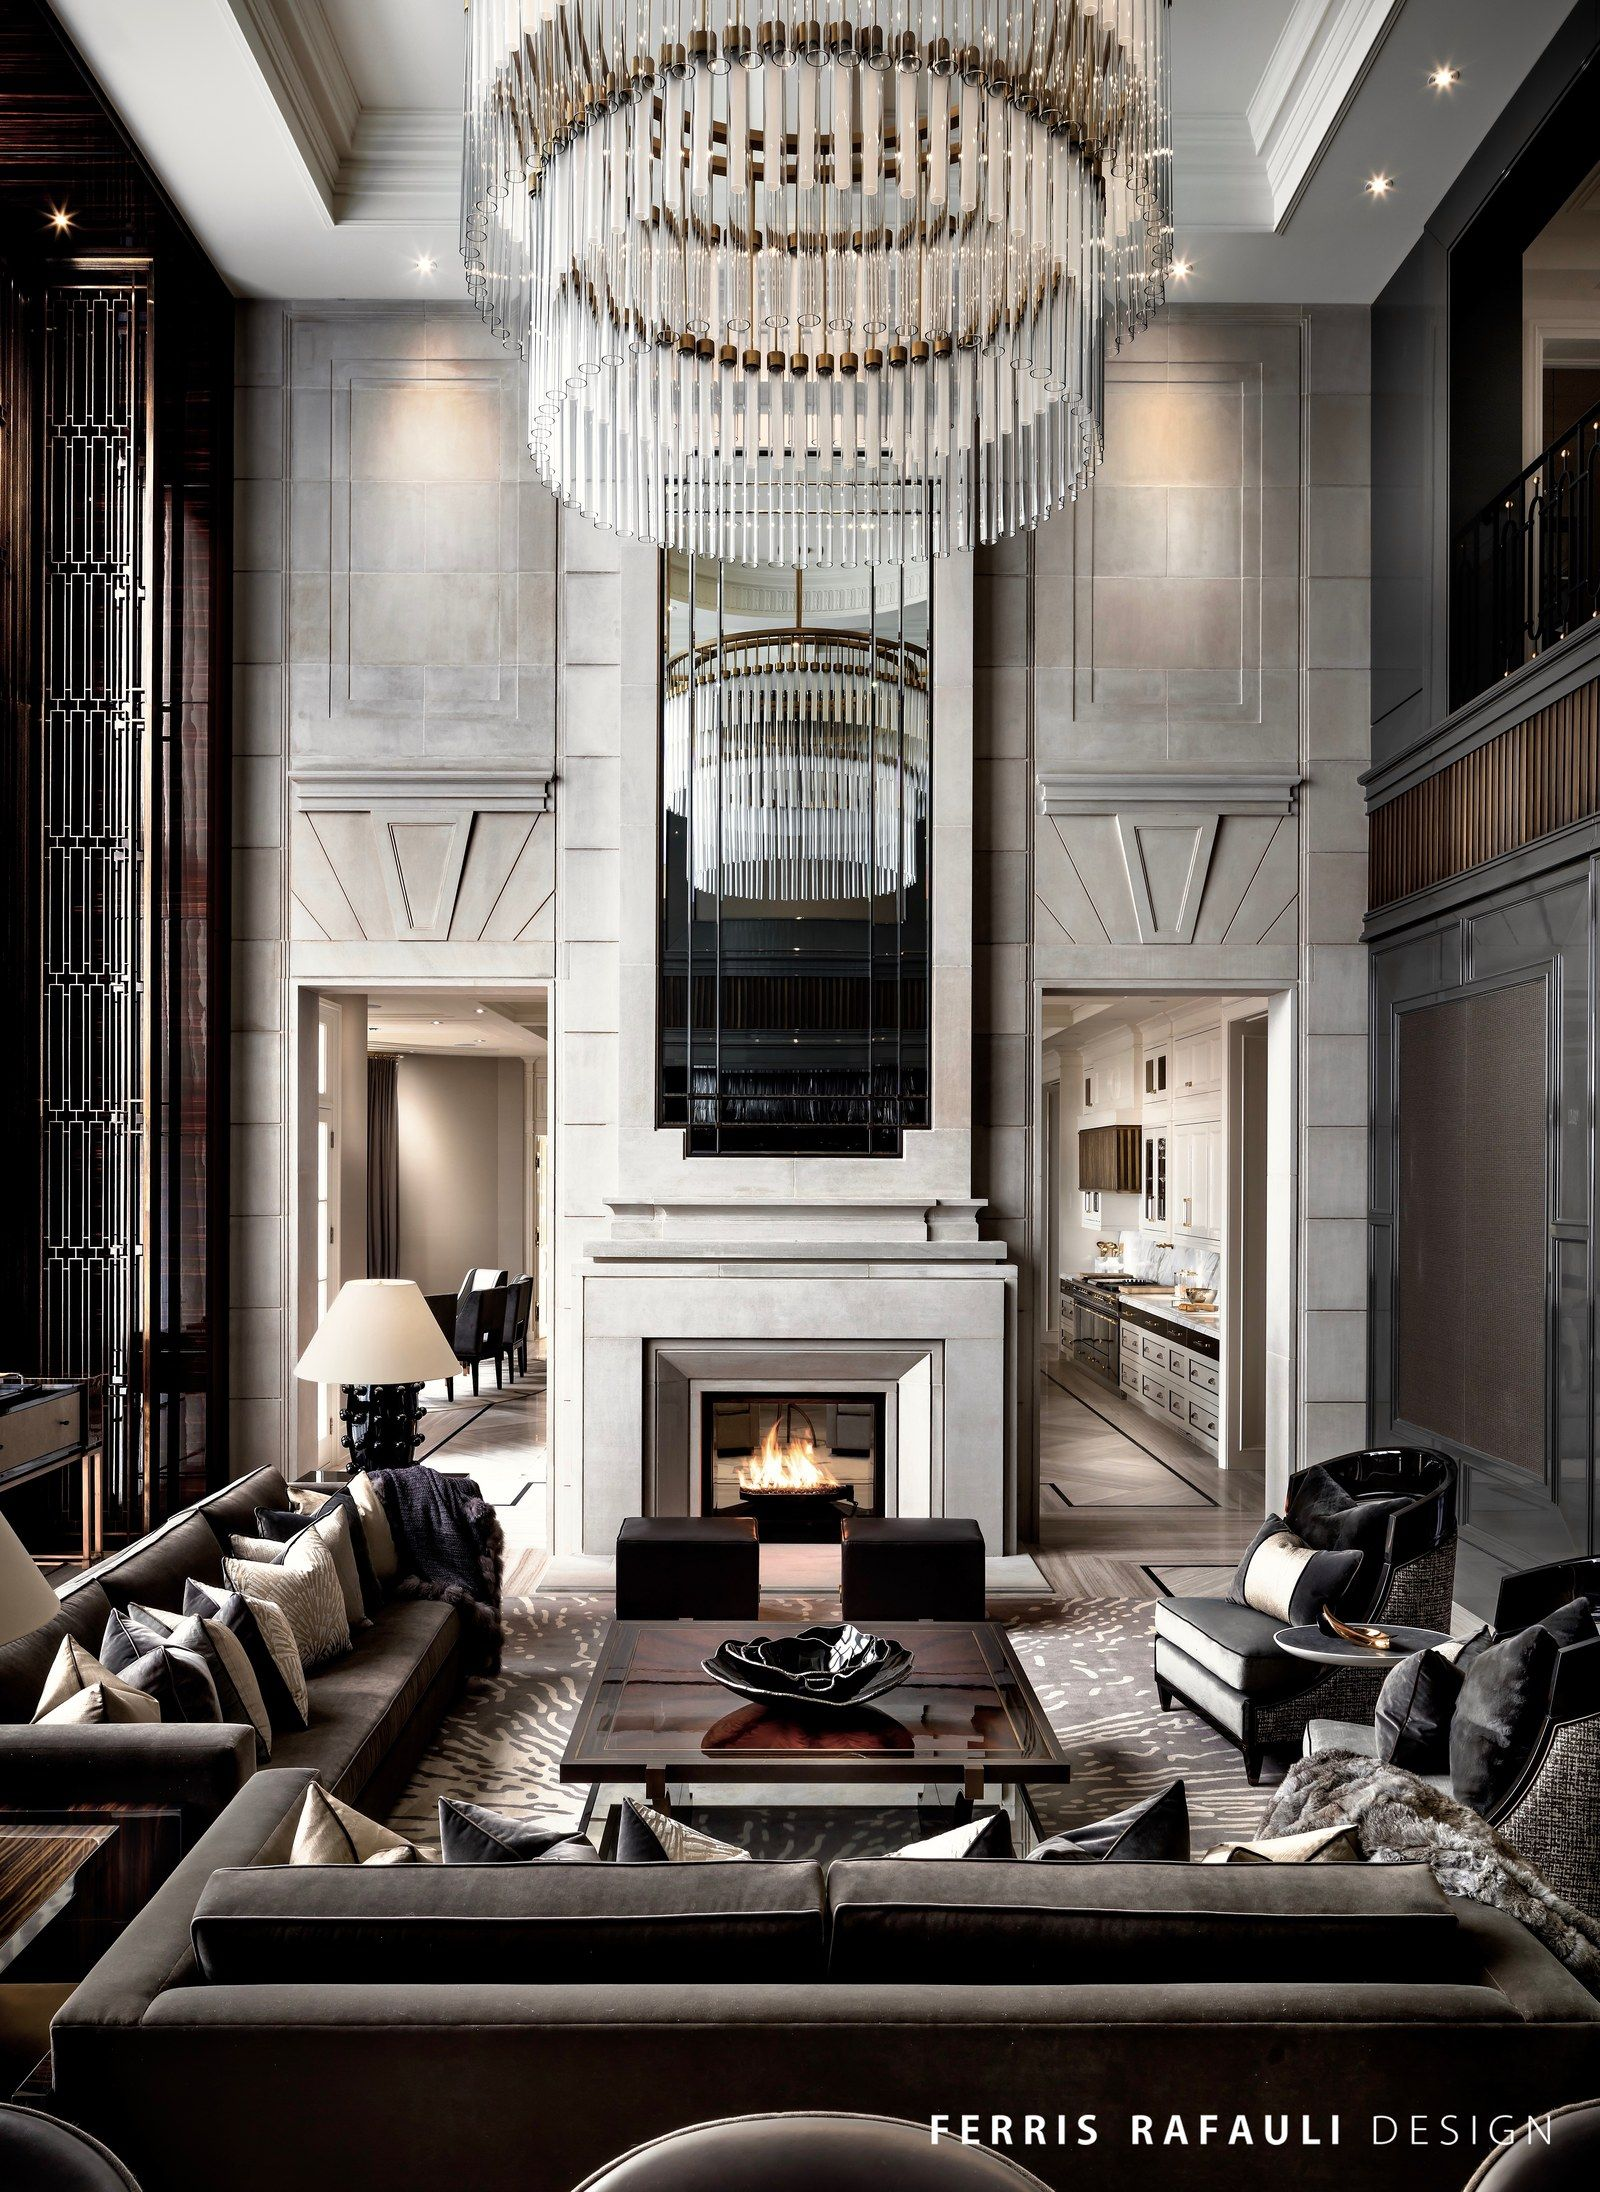 Ferris rafauli specializes in integrating ultra luxury for Fine home decor